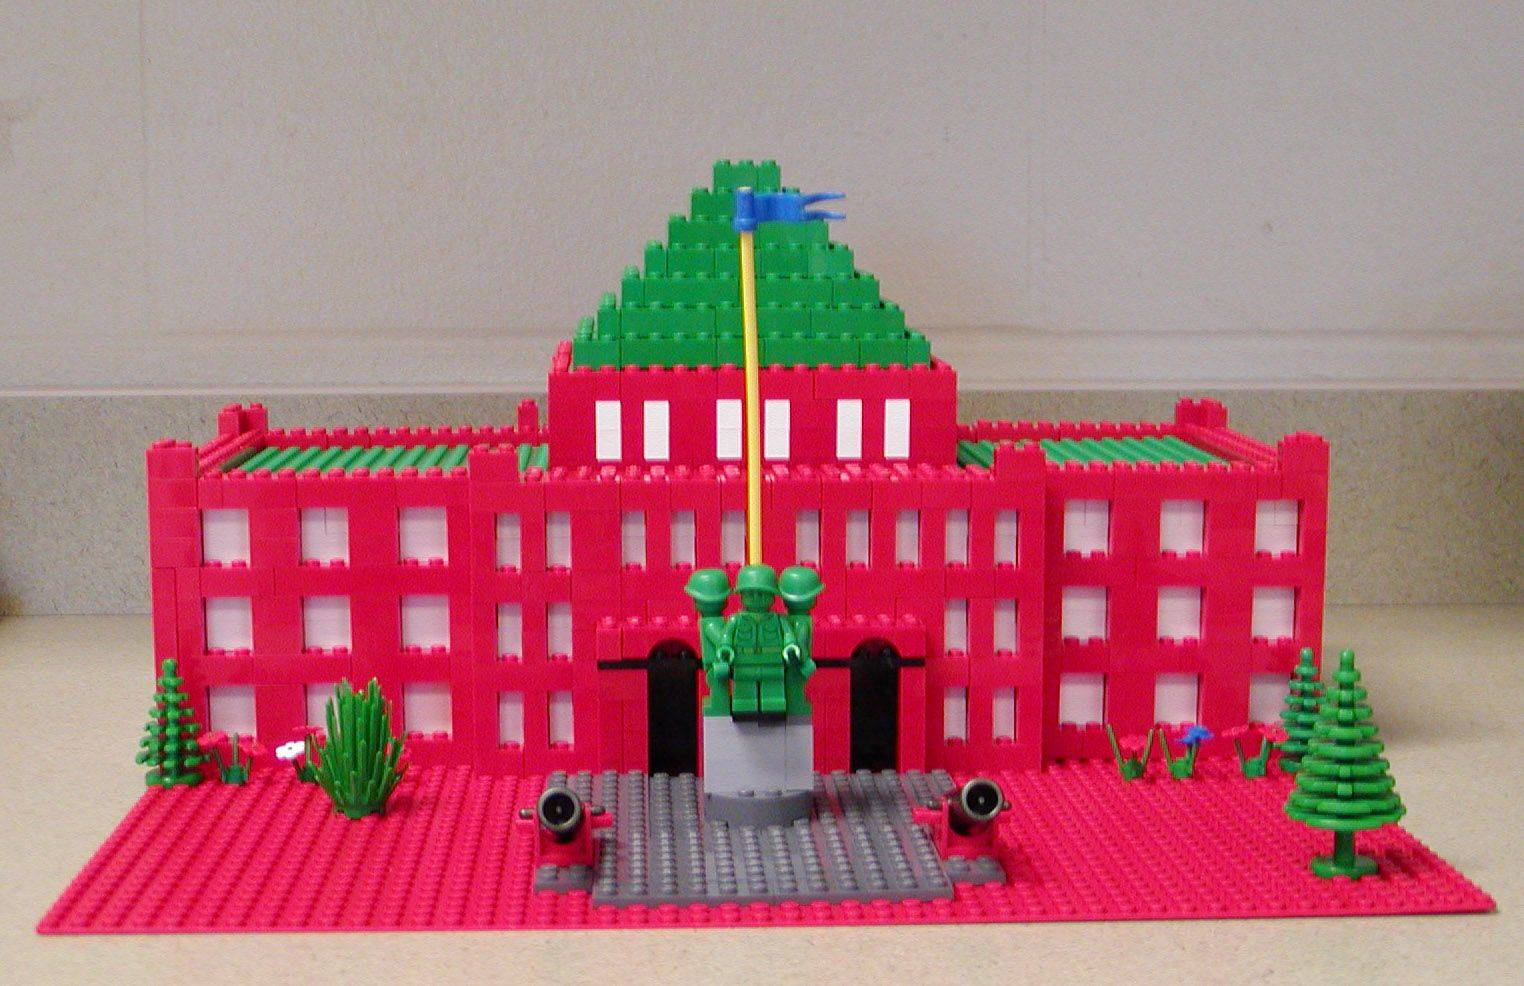 Jill Nippert's third-graders from Heartland Elementary School built this Lego replica of the Kane County Courthouse. It will be on display at the Geneva History Center.